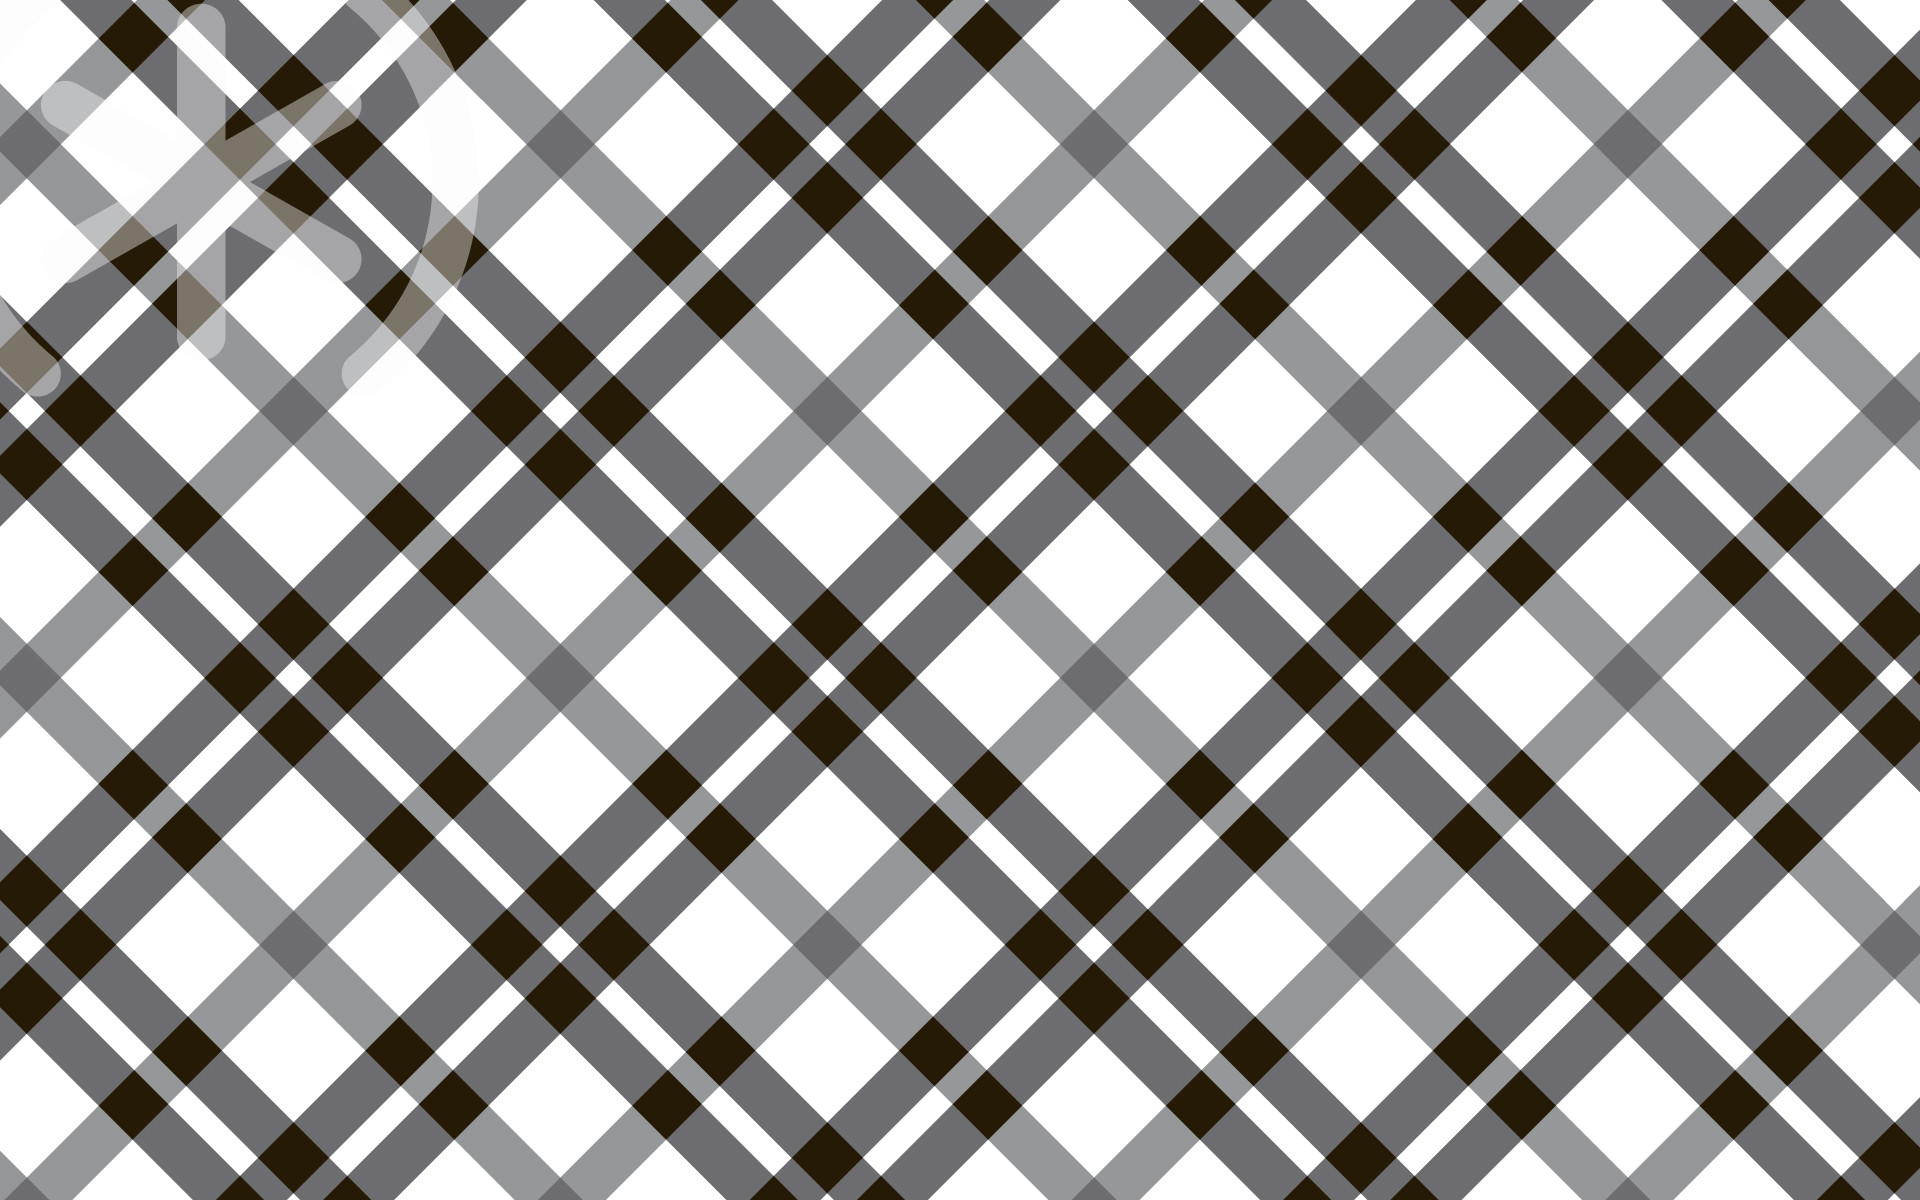 Black and White Checkerboard Wallpaper (47+ images).